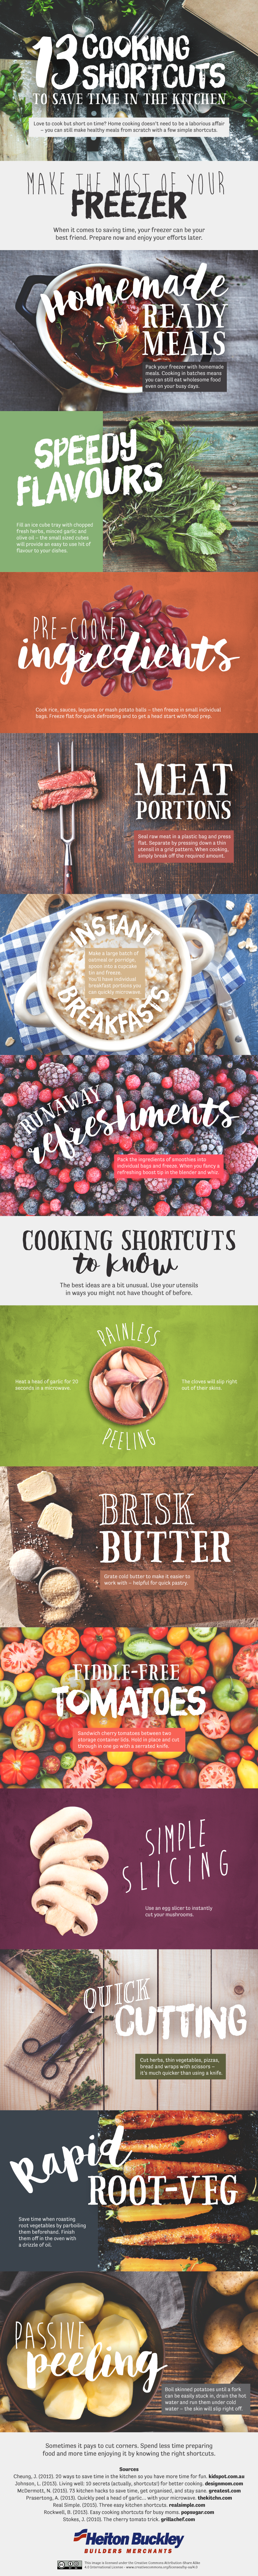 Best Cooking Shortcuts to Save Time in the Kitchen